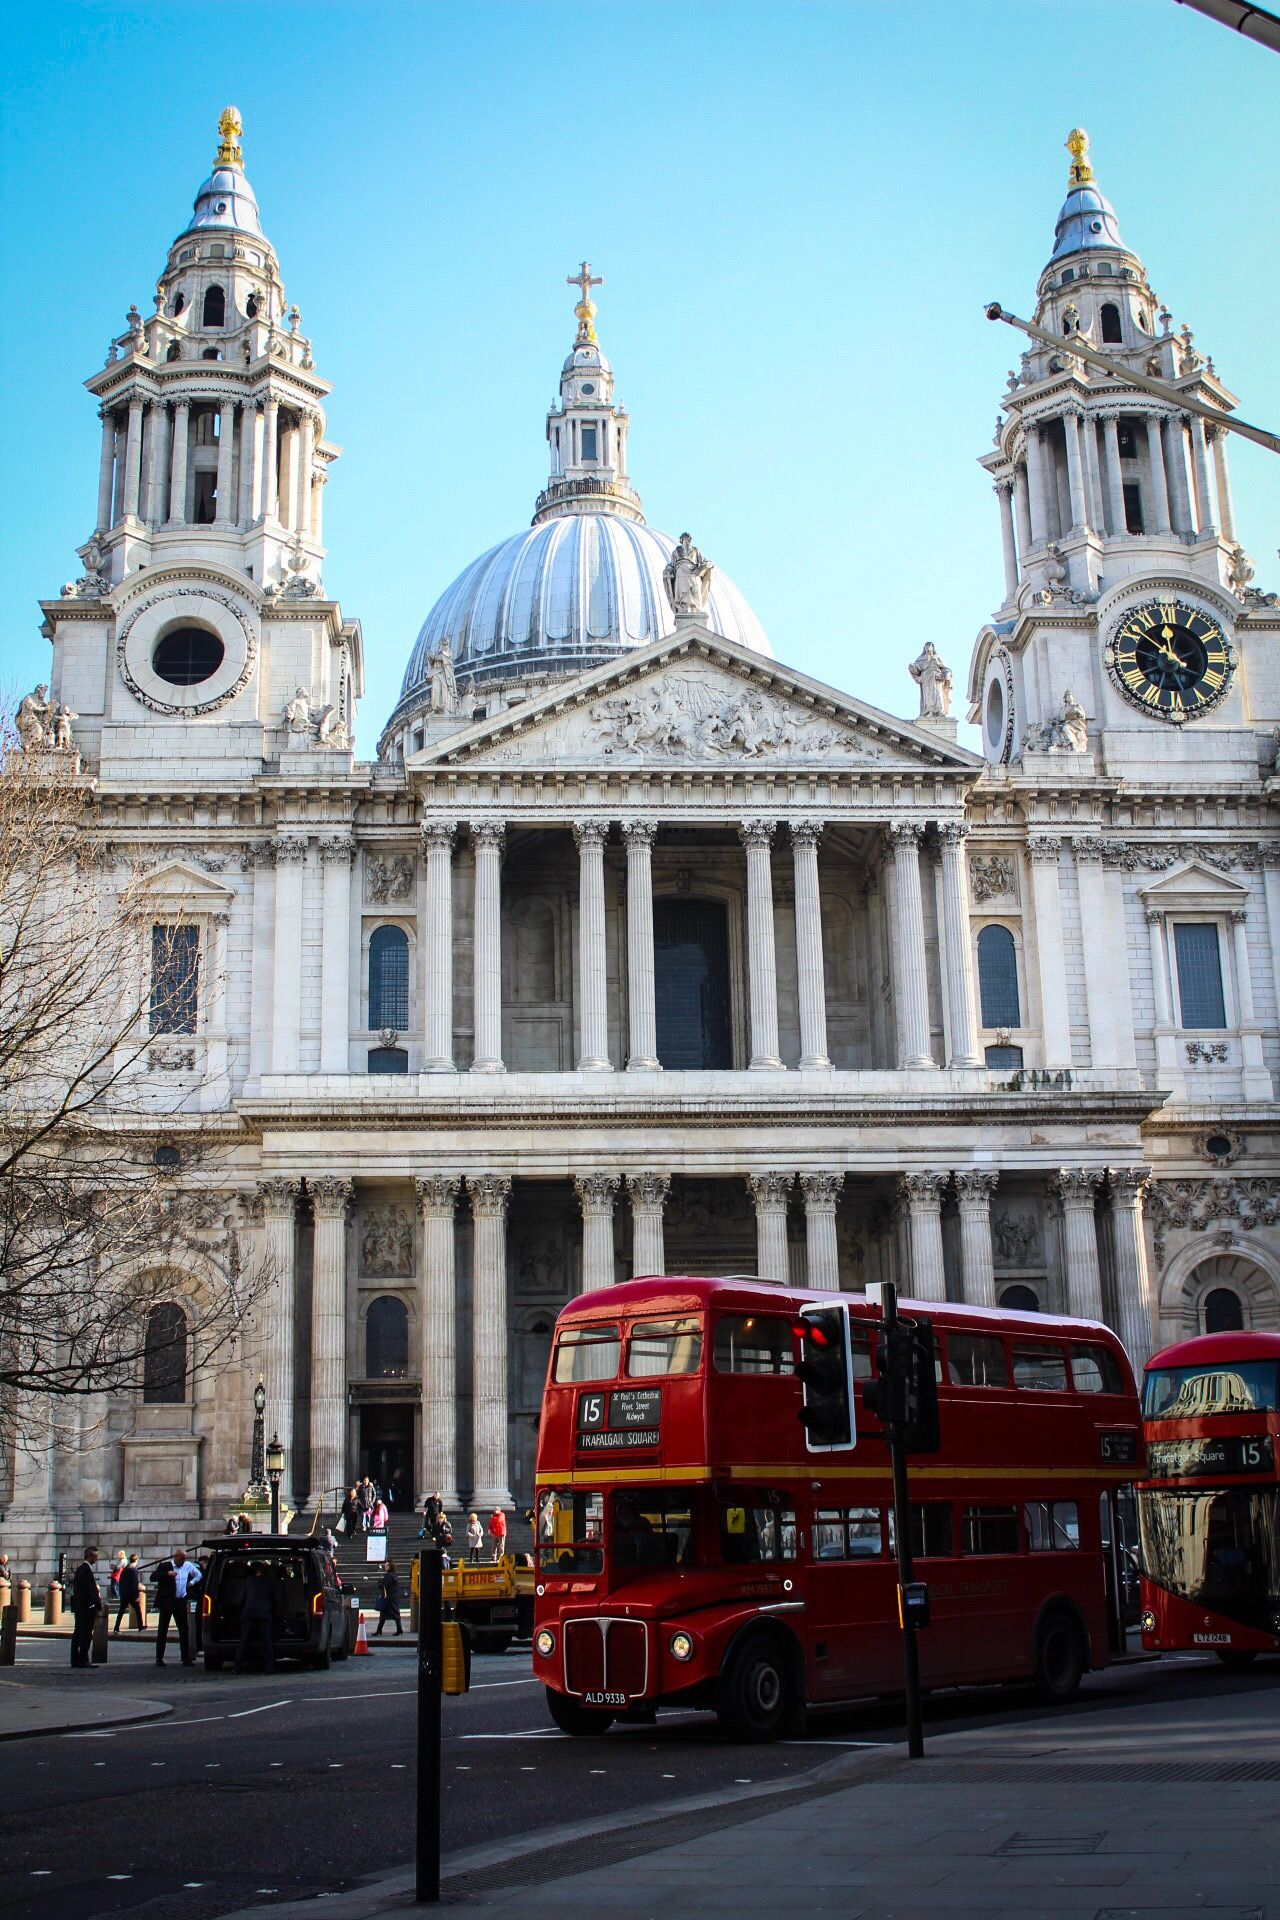 Architecture Building Exterior Built Structure Religion Place Of Worship Mode Of Transport Outdoors Travel Destinations Transportation City Spirituality Dome Land Vehicle Day Sky No People St Paul's Cathedral Everyday London London Bus Red Bus City City Street Architectural Column